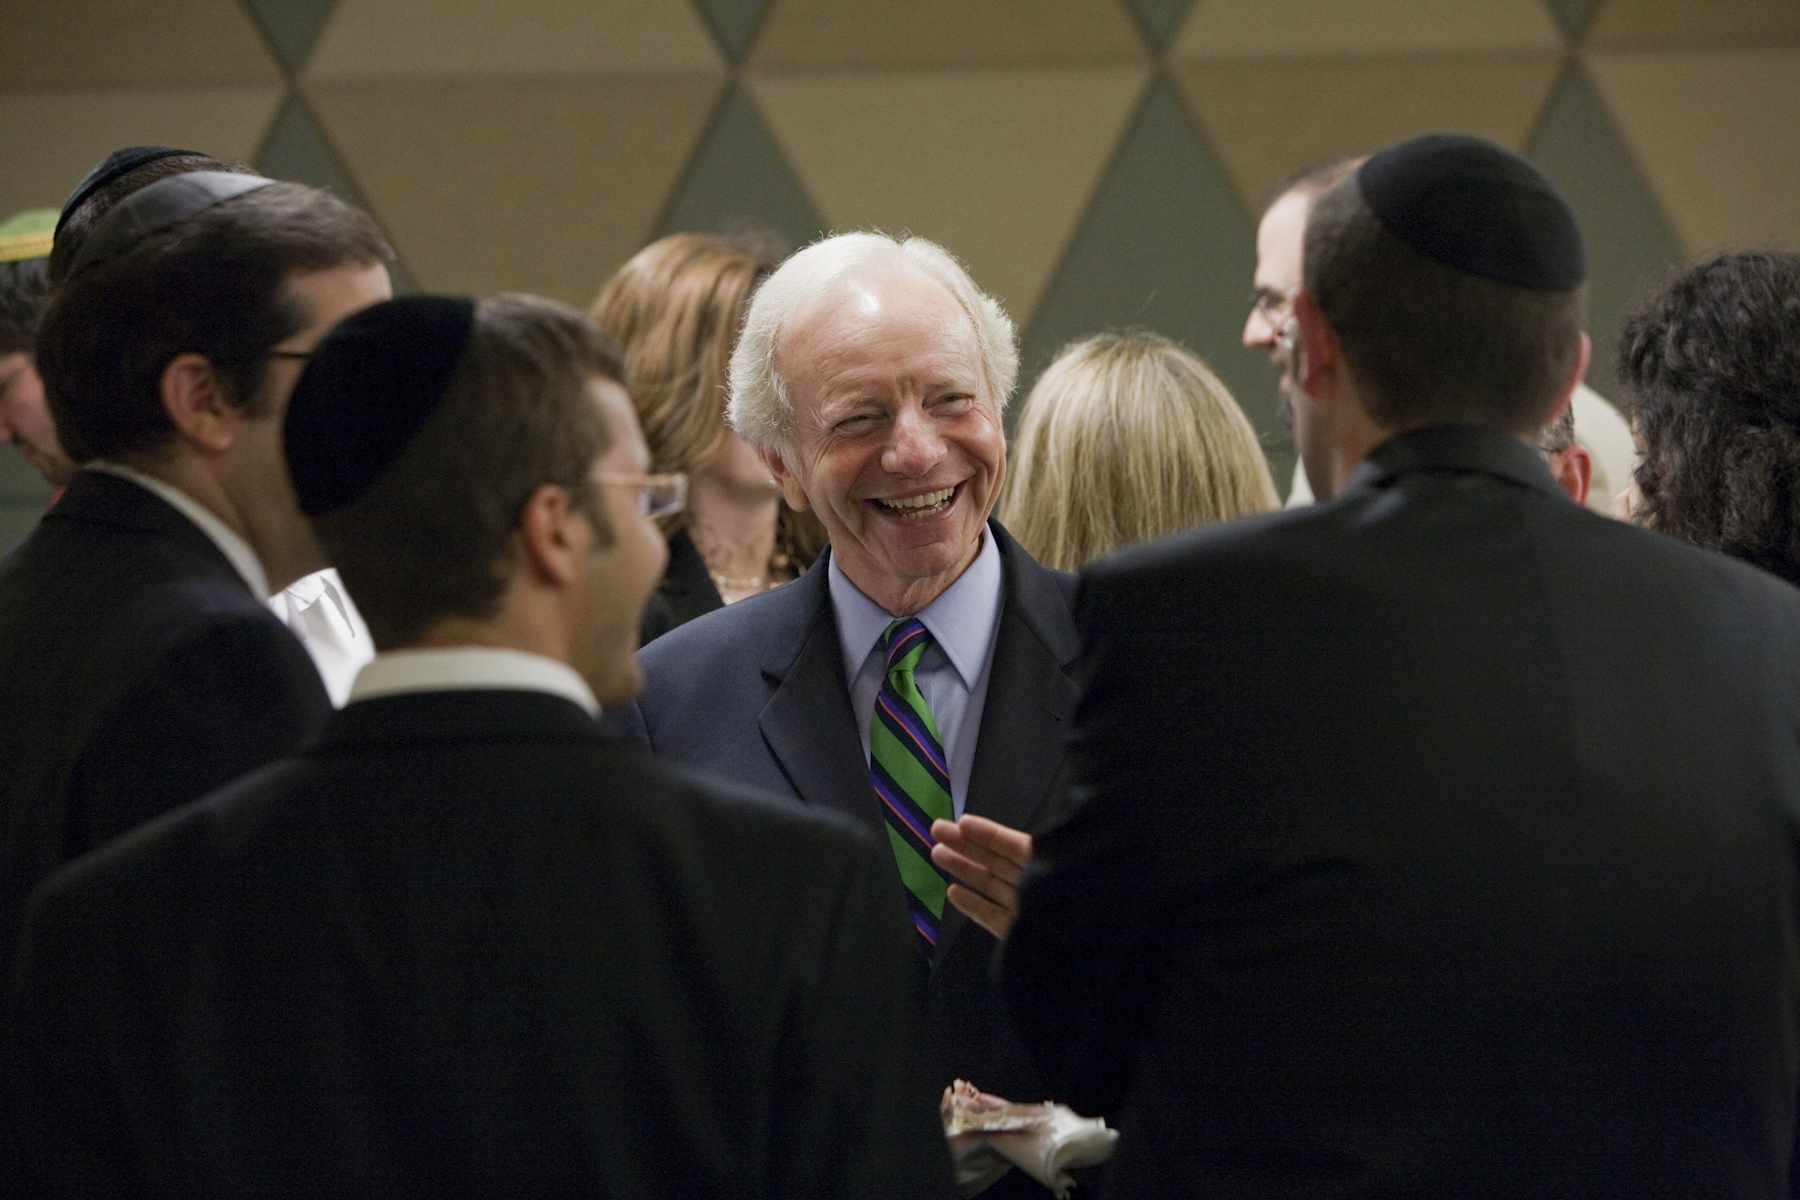 Senator Lieberman meets with student leaders at a special dinner preceding the event.